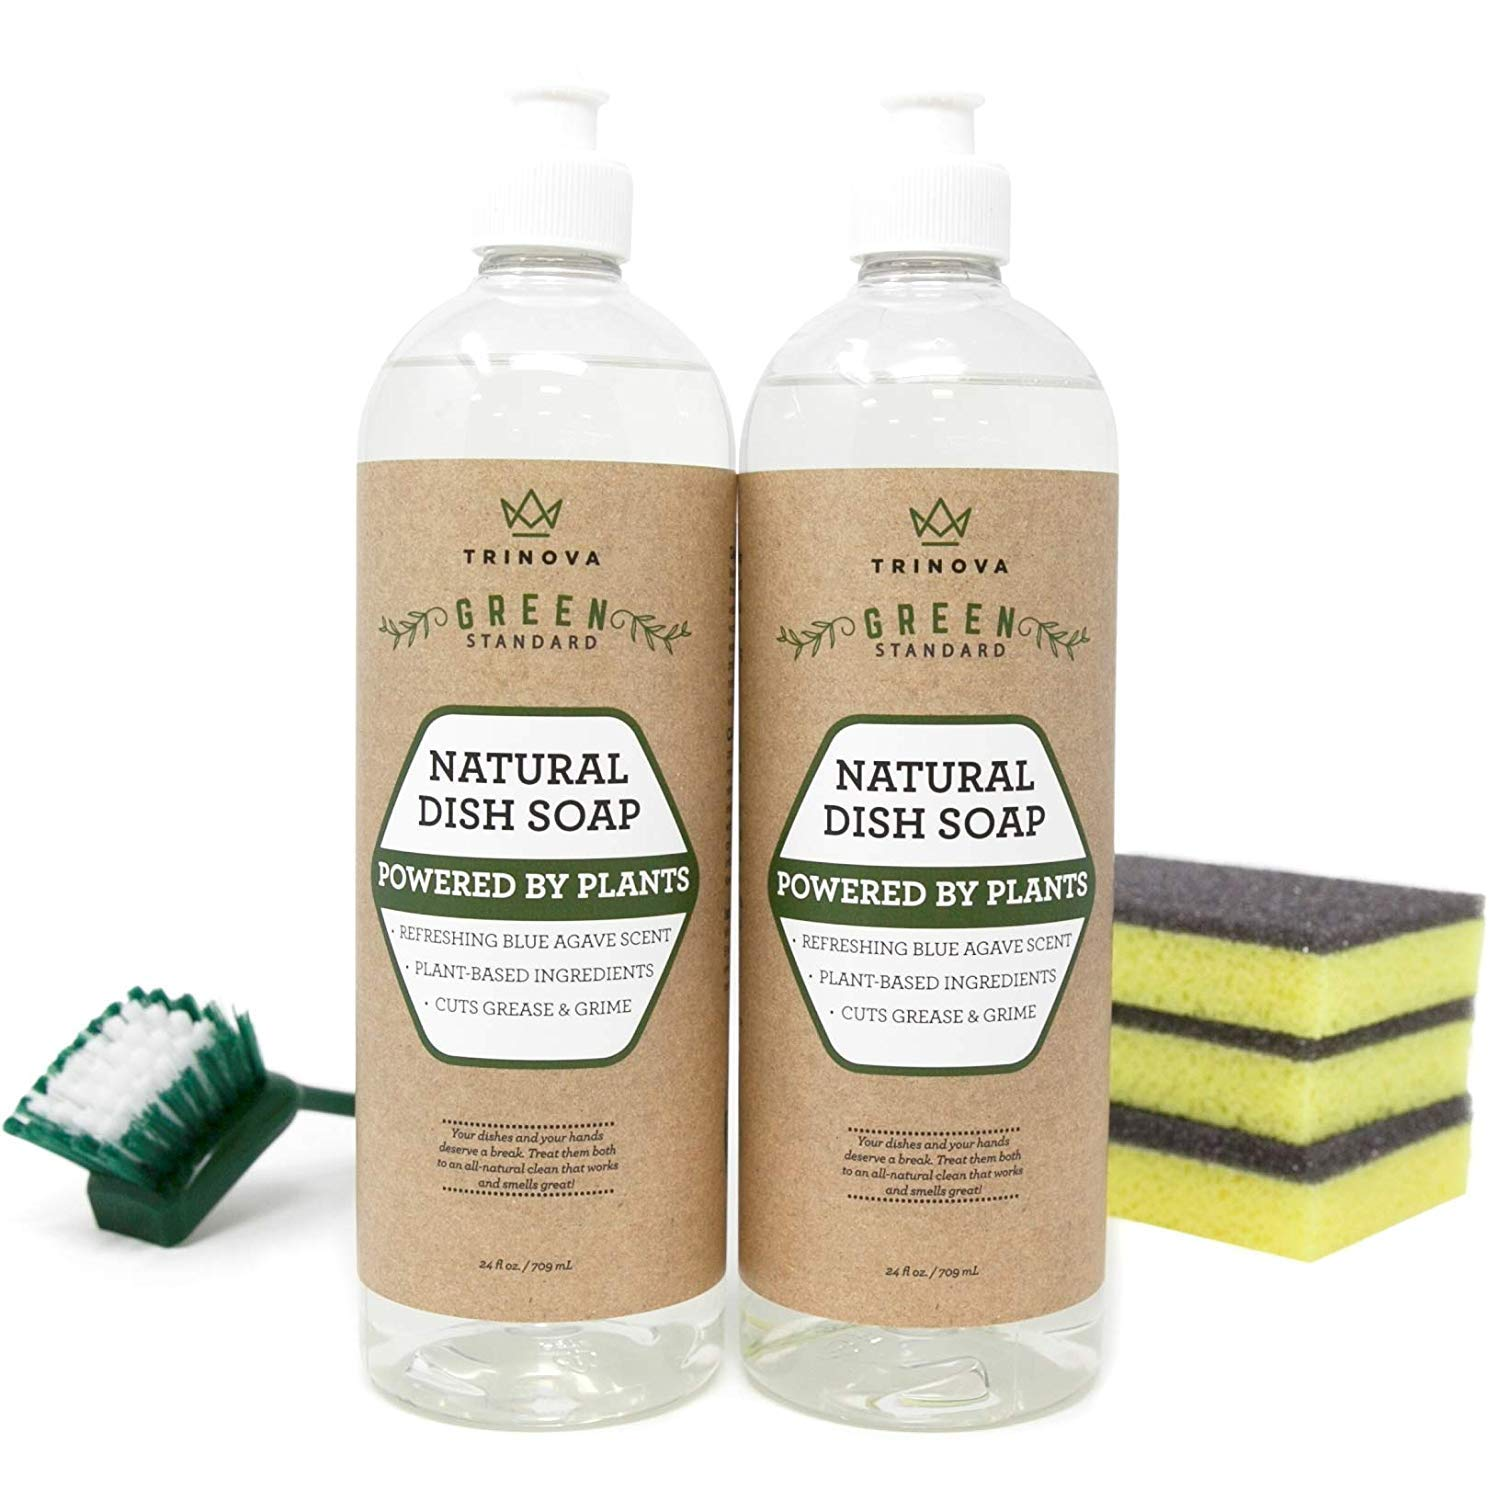 Natural Dish Soap Organic Formula - Comes with Sponge & Scrub Brush for Cleaning Dishes & Washing All Kitchen Items. Powerful & Eco Friendly Cleaner is Non Toxic. (2 Pack of 24 oz Bottles). TriNova.